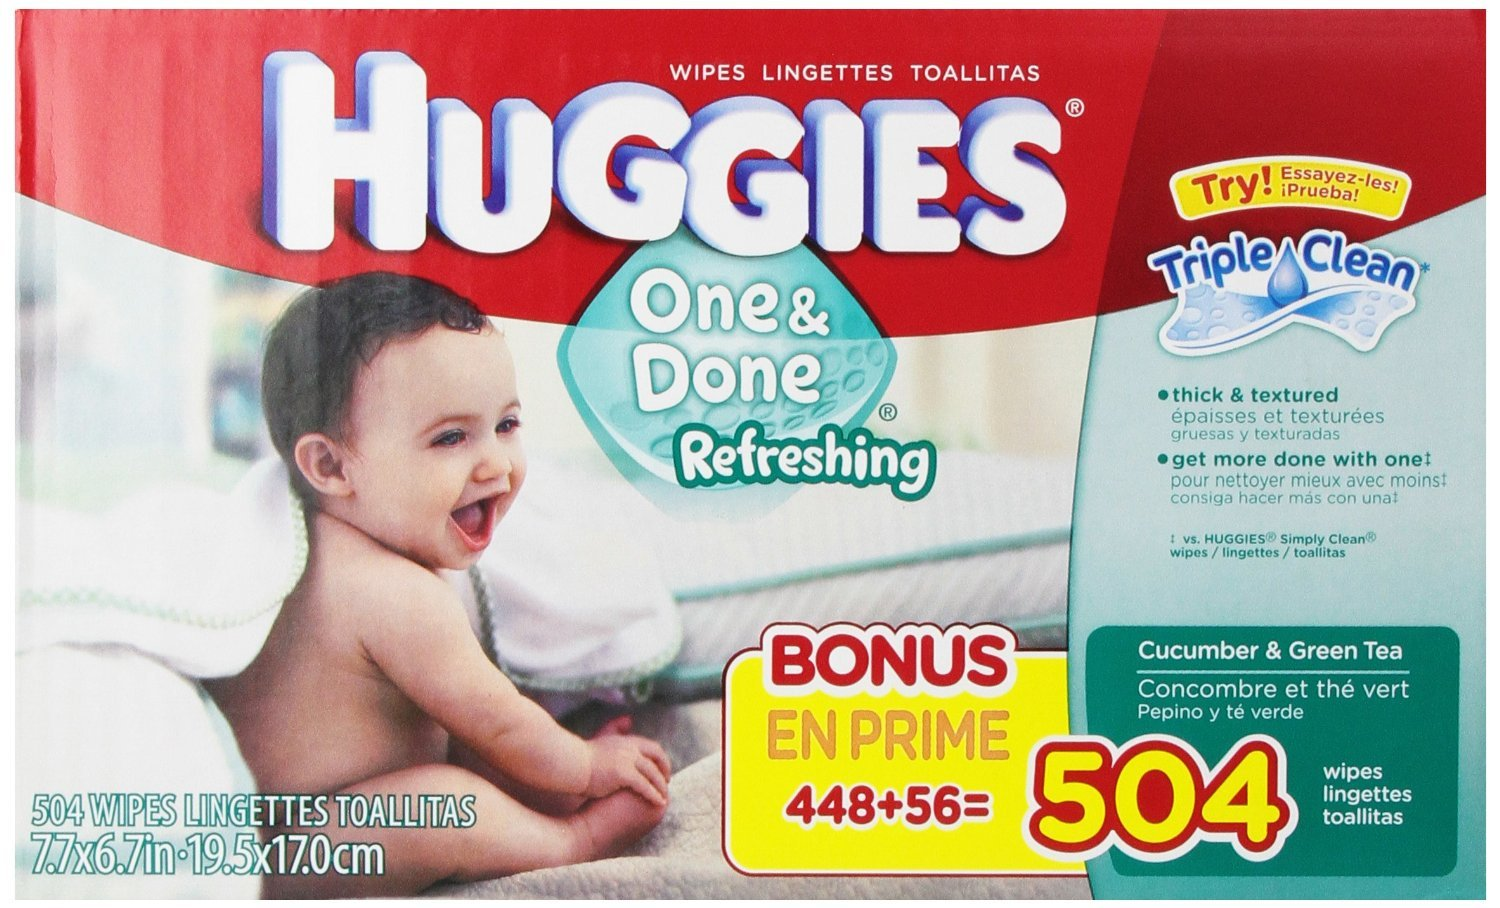 Huggies One and Done Refreshing Baby Wipes,Cucumber & Green Tea, Refill, 504 Count by Huggies: Amazon.es: Salud y cuidado personal